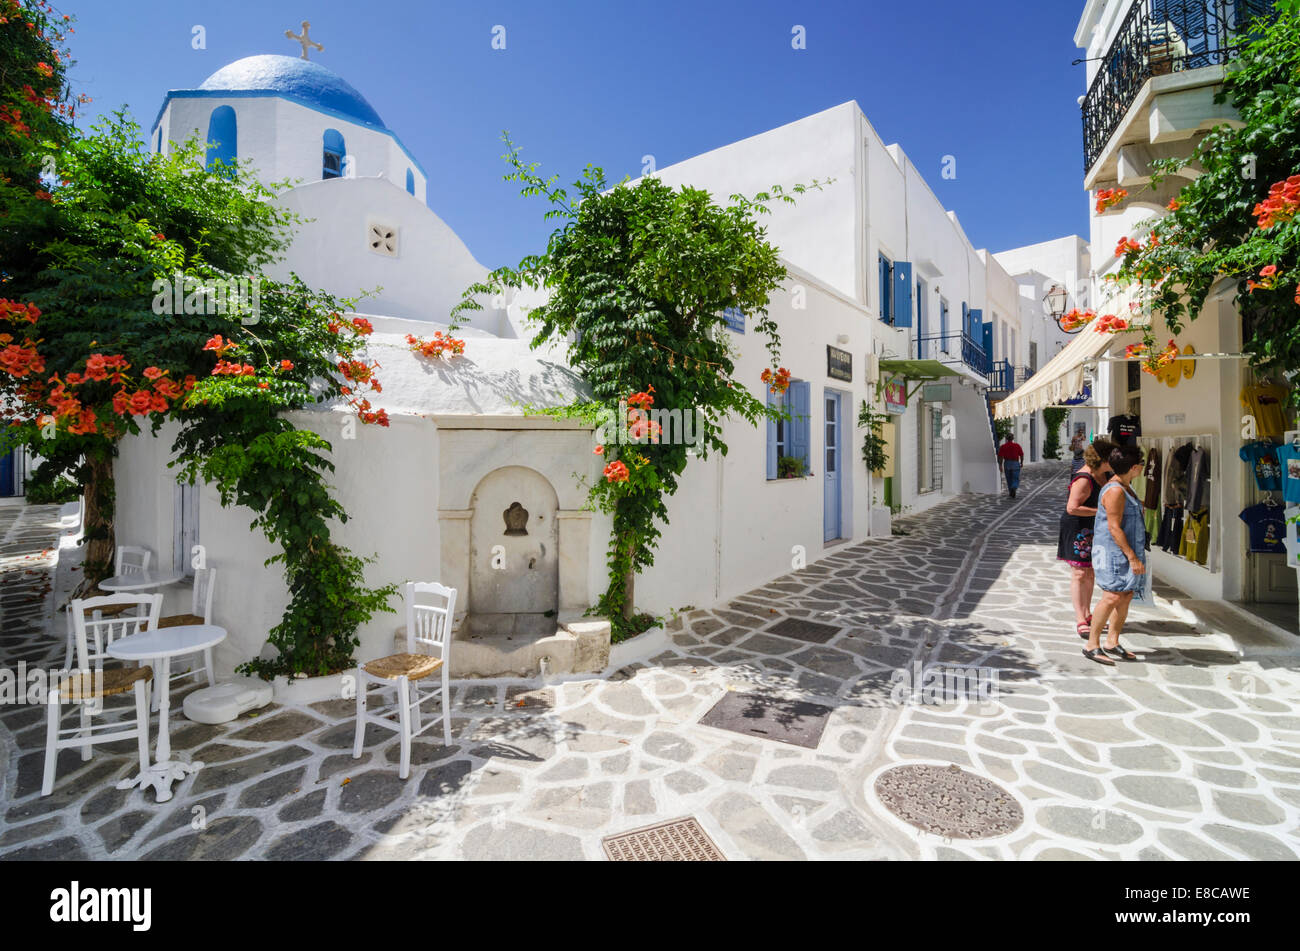 Greek water fountain and blue domed church in the whitewashed streets of Parikia Town on the island of Paros, Cyclades, Stock Photo